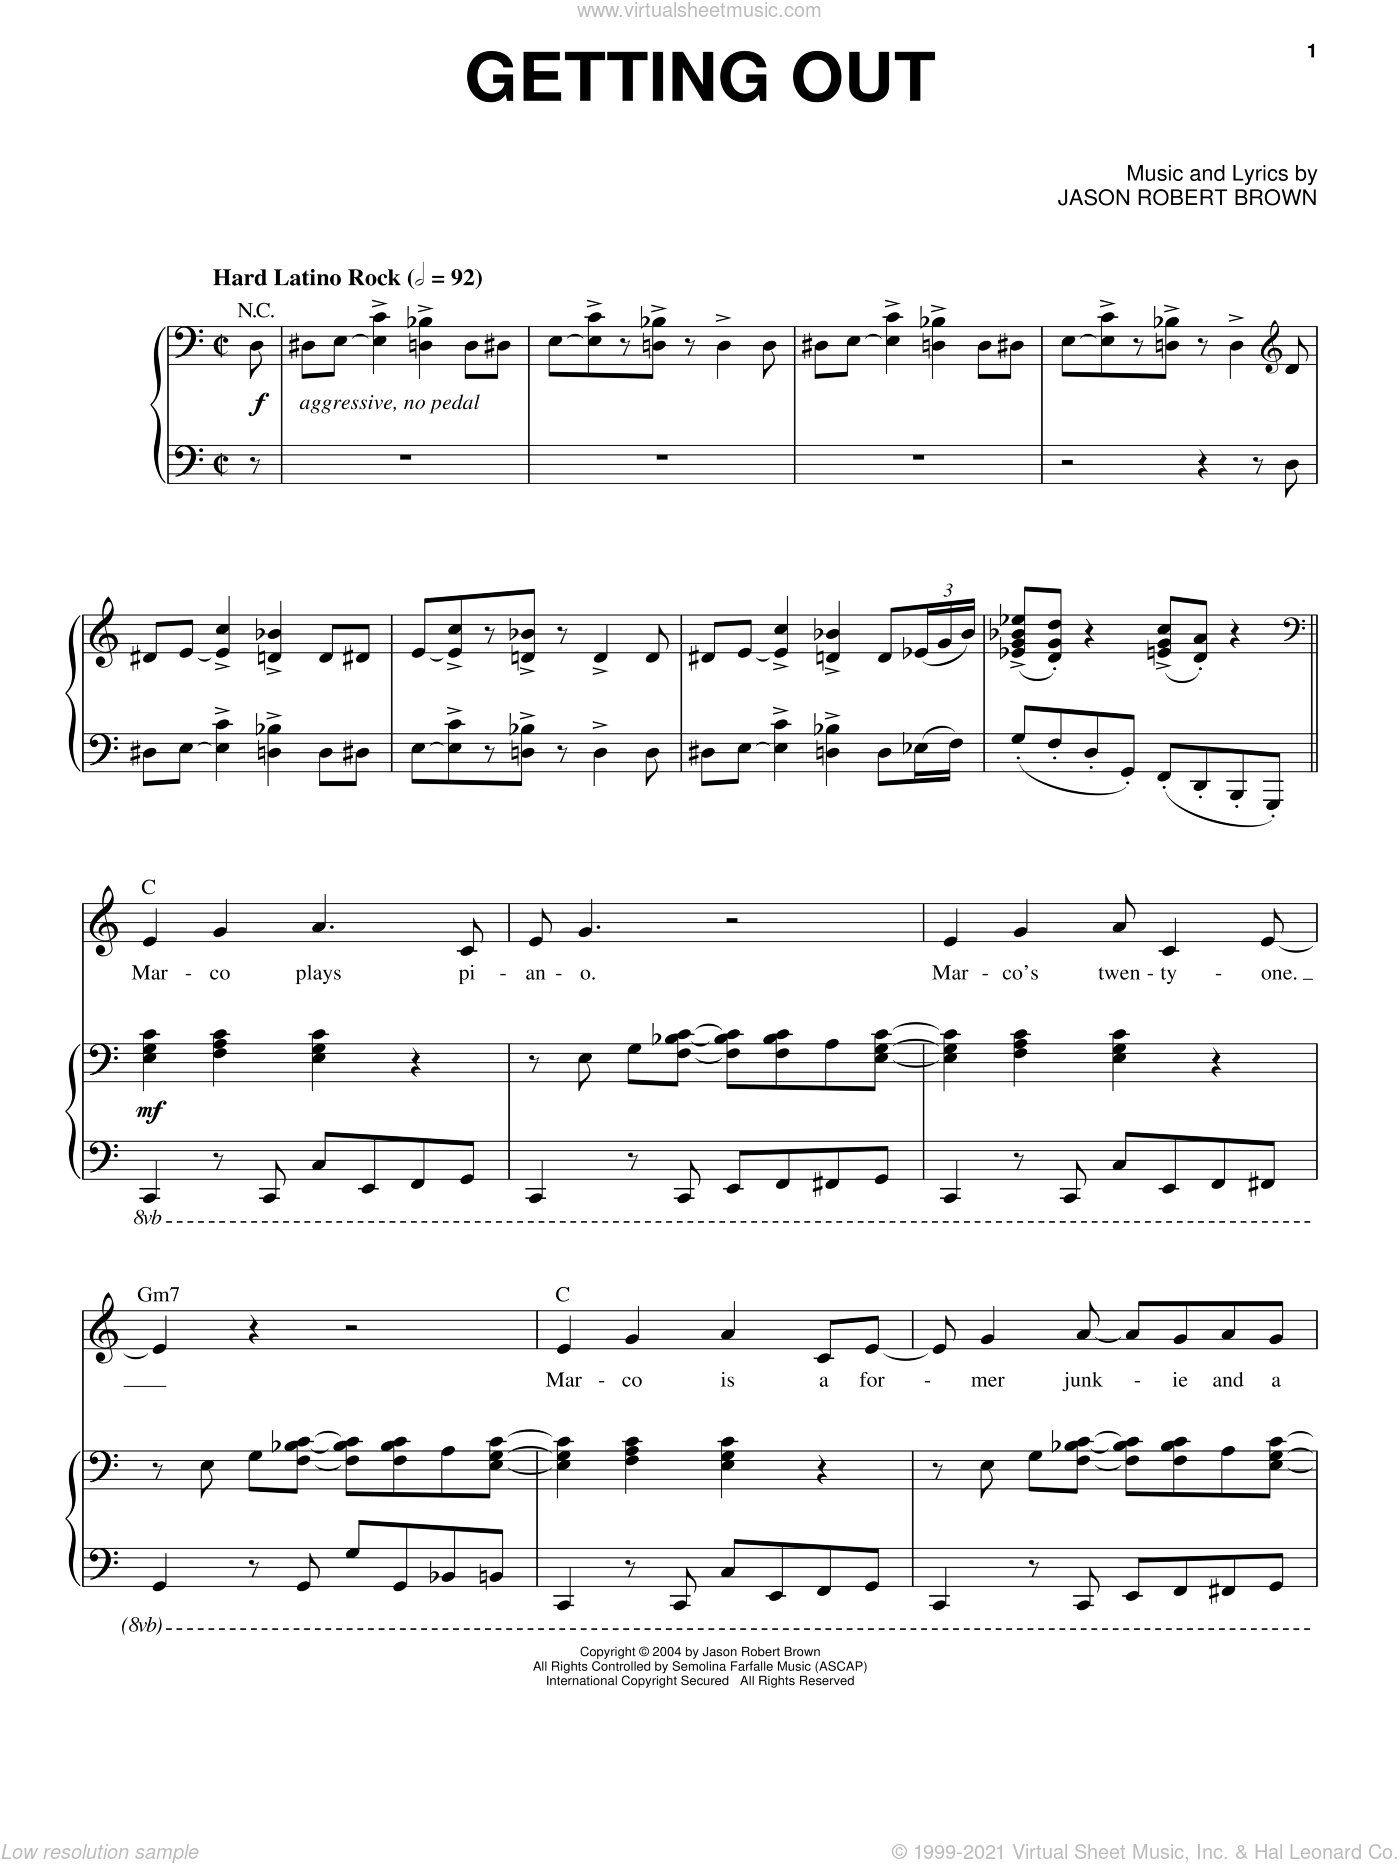 Getting Out sheet music for voice and piano by Jason Robert Brown